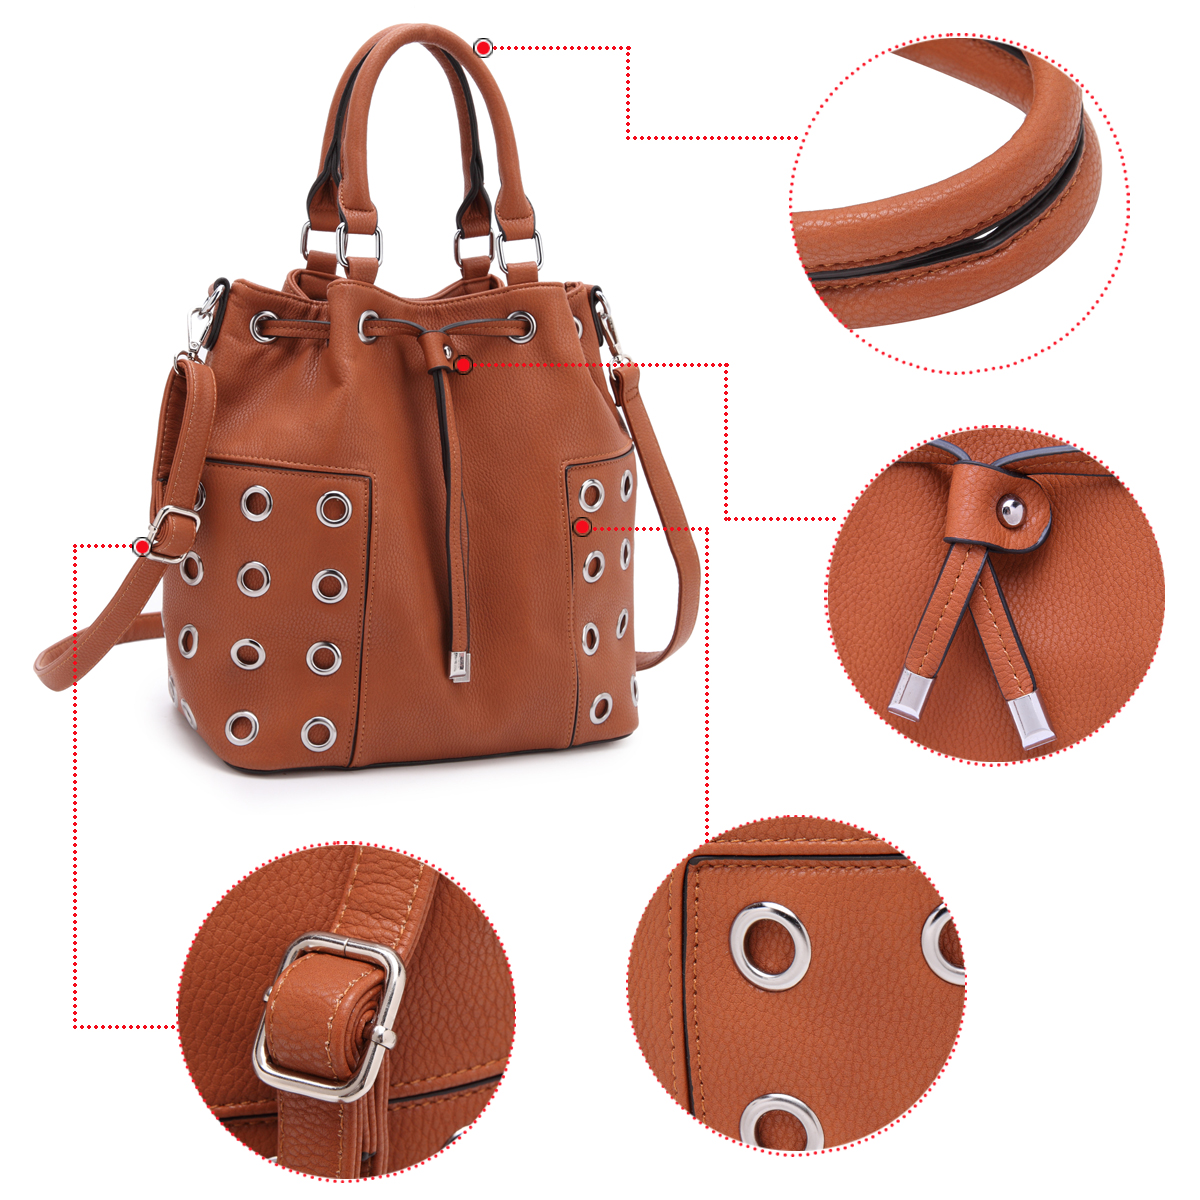 Dasein Faux Leather Drawstring Bucket Satchel with Grommet Design